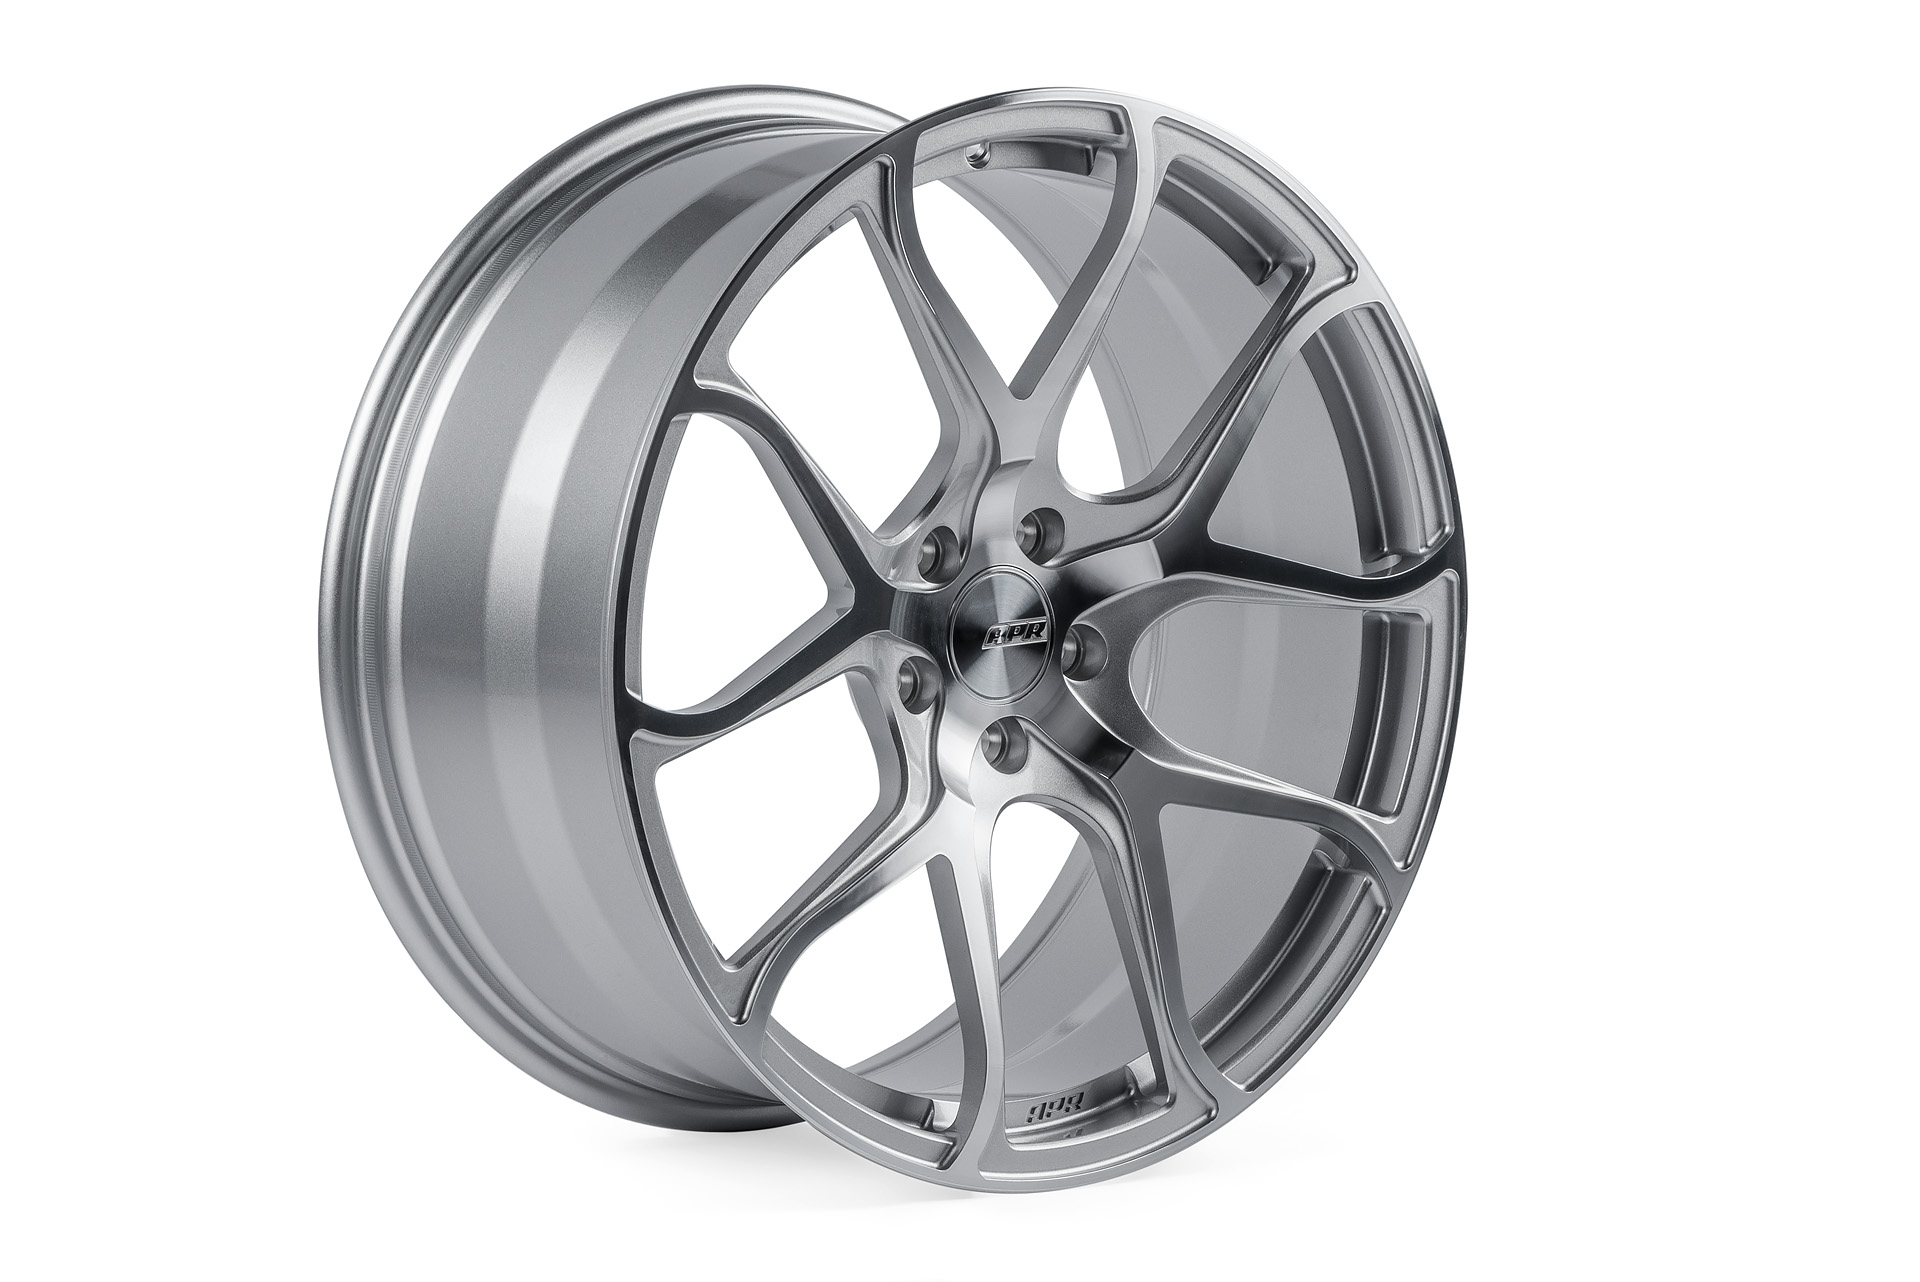 APR S01 Forged Aluminum Wheel - ET42, 20X9 (Machined Silver)